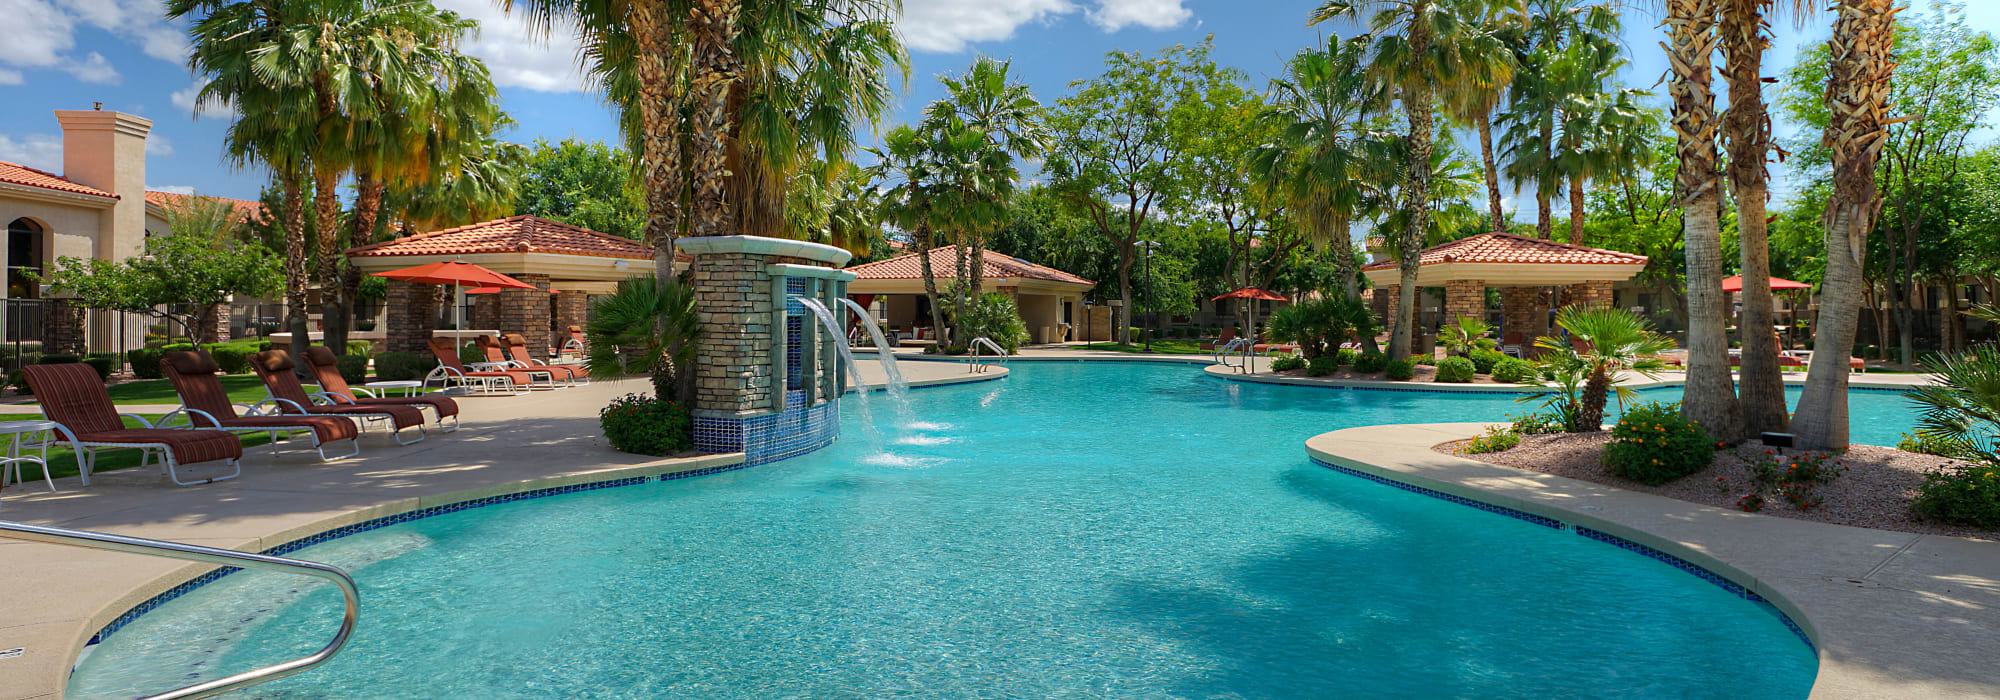 Luxury pool with fountain at San Palacio in Chandler, Arizona